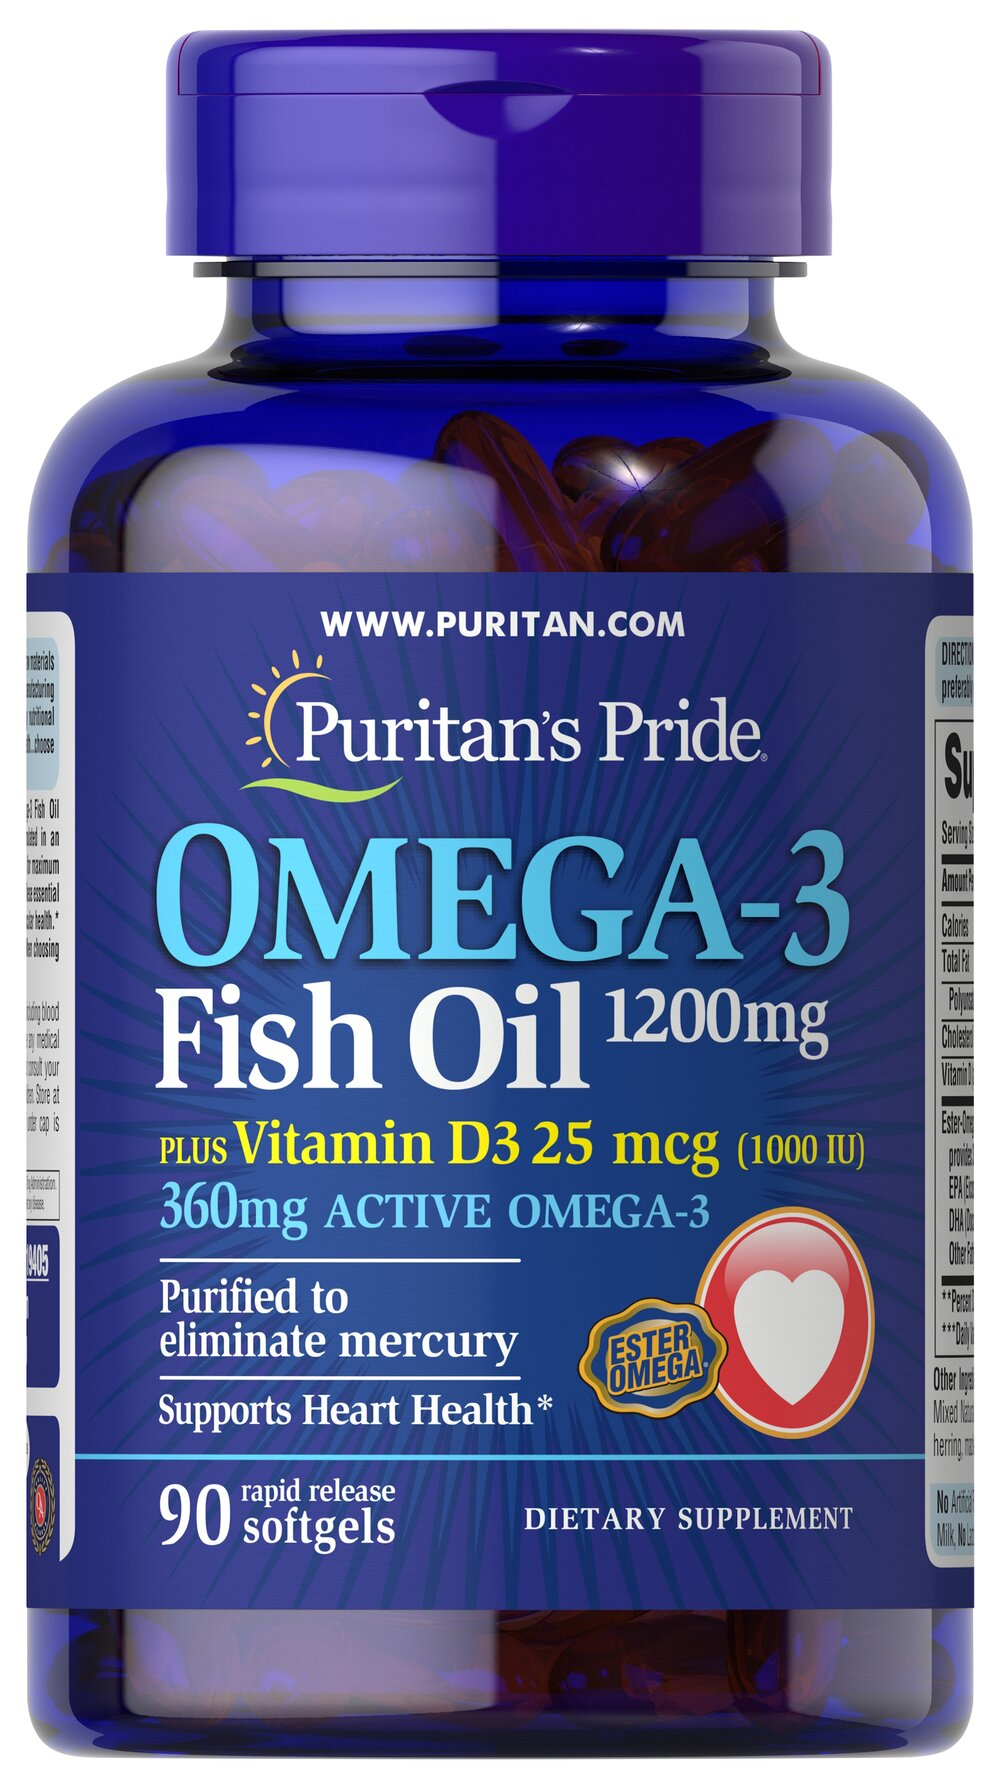 Omega 3 Fish Oil 1200 mg  plus Vitamin D3 1000 IU <p>Omega-3 Fish Oil– a highly concentrated and purified fish oil selected from the finest deep sea, cold water fish combined with 1000 IU of Vitamin D3 in one convenient coated softgel.</p> 90 Softgels 1200 mg/1000 IU $15.99